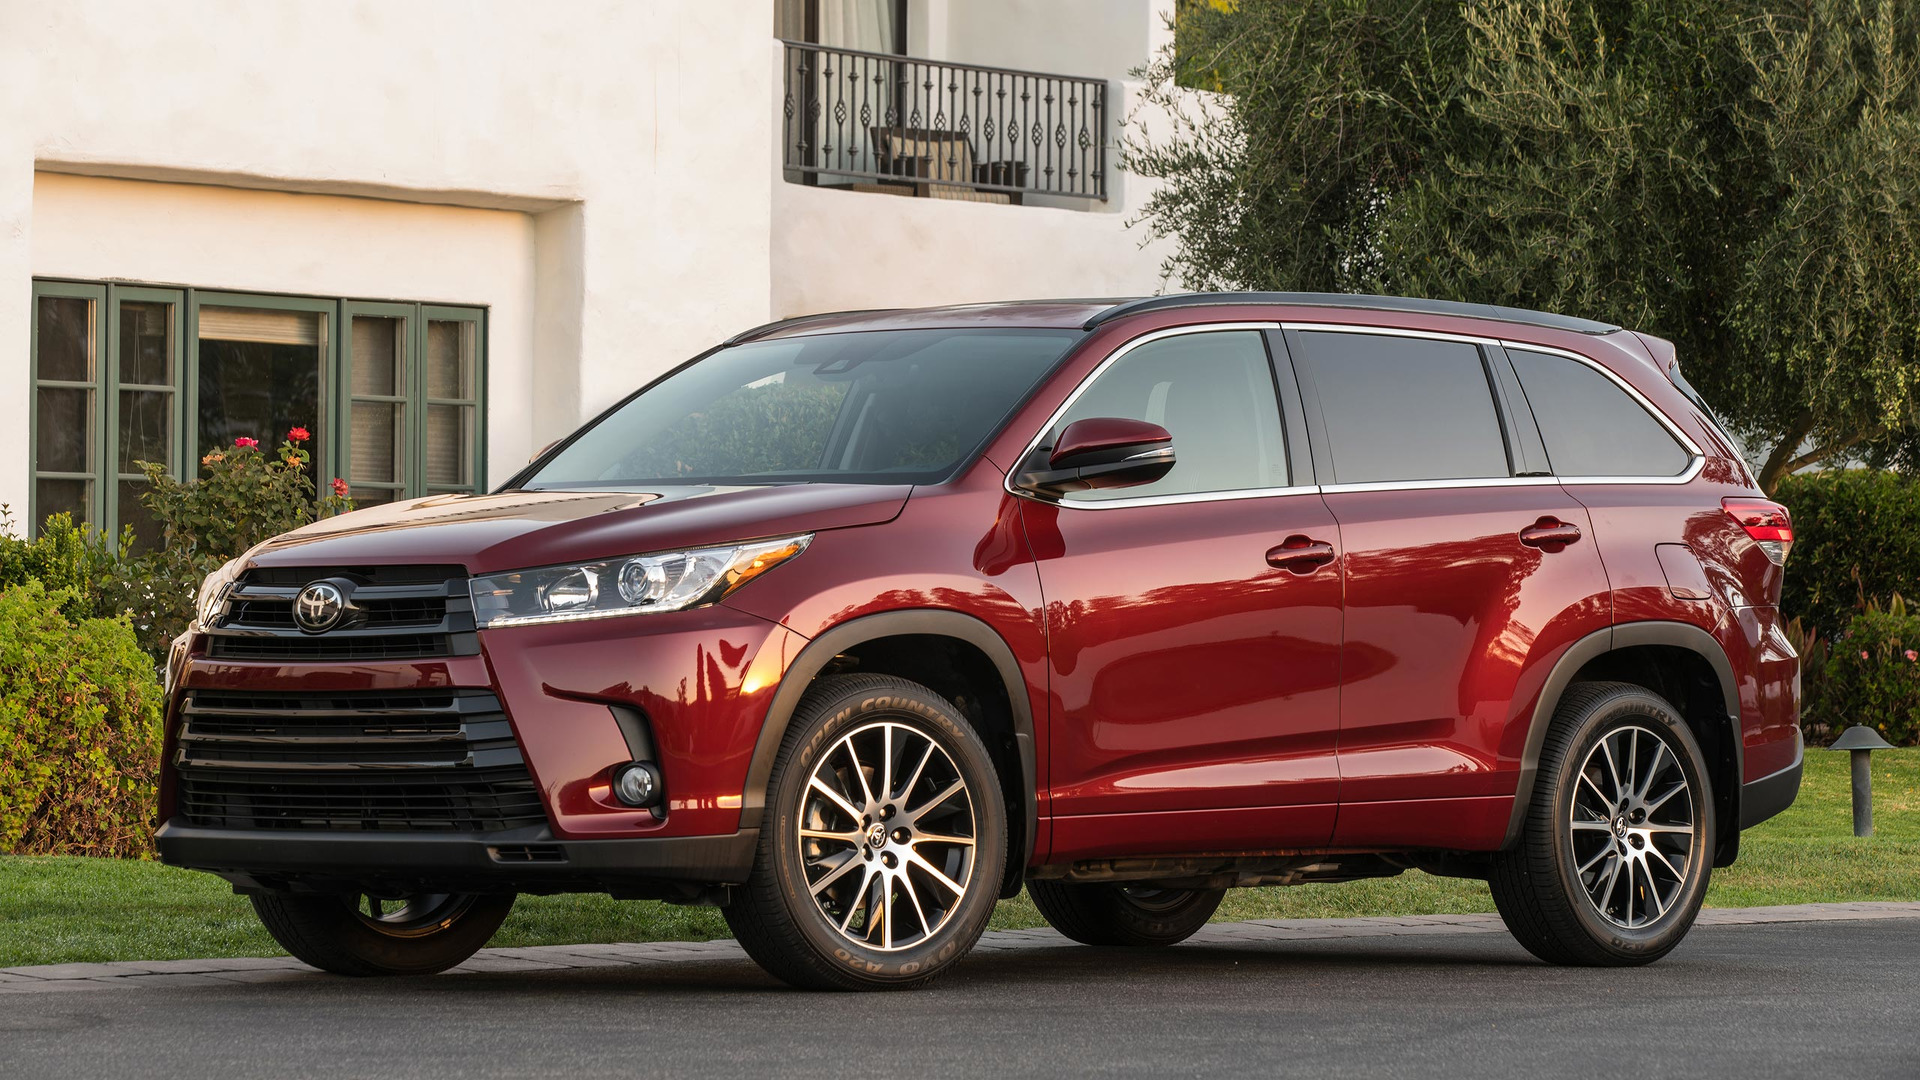 2017 toyota highlander hybrid gets big price drop updates throughout lineup. Black Bedroom Furniture Sets. Home Design Ideas